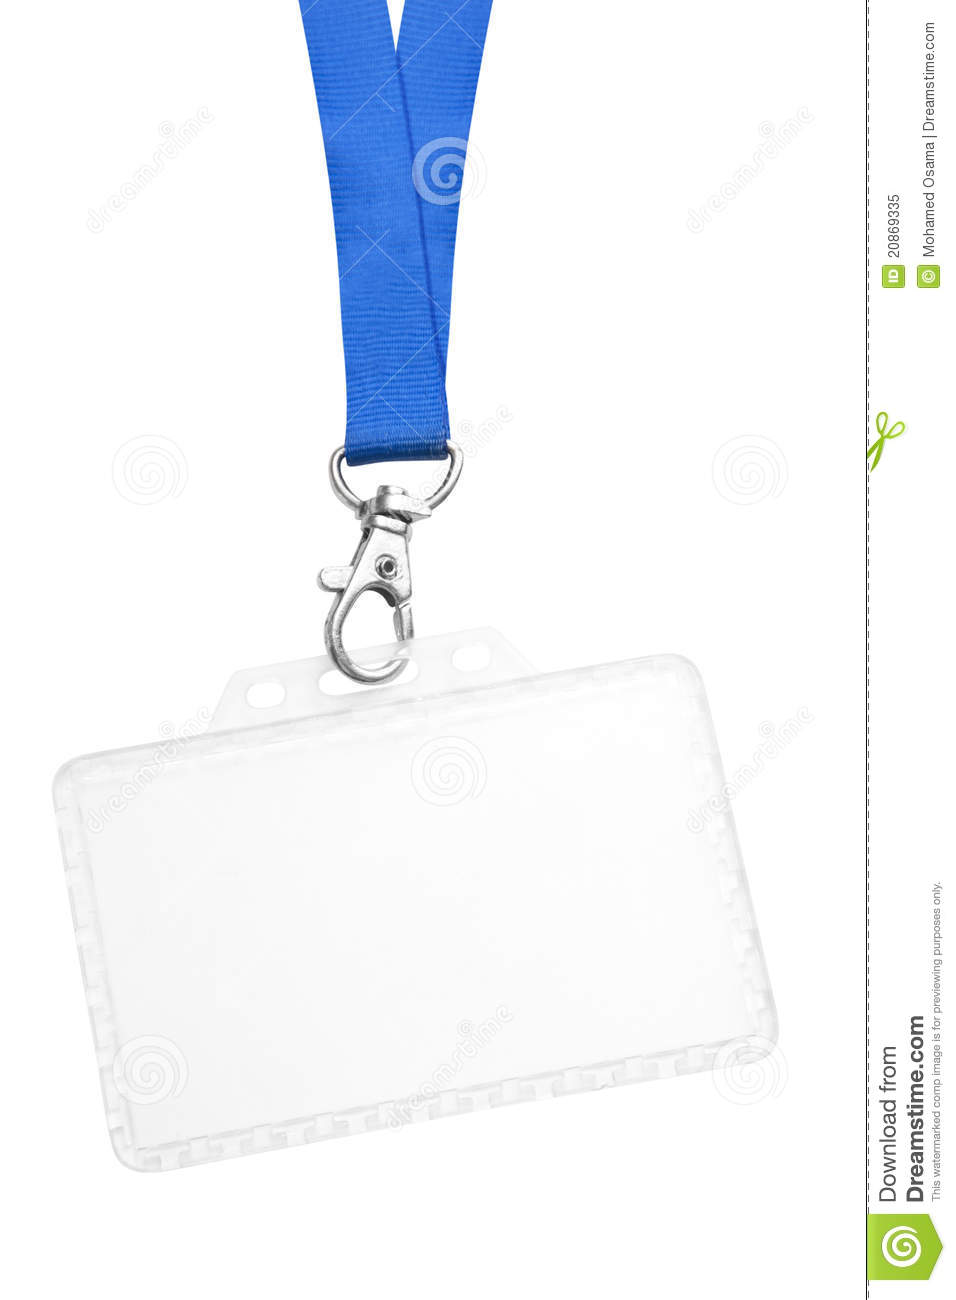 Displaying 19u0026gt; Images For - Blank Identification Card Template...